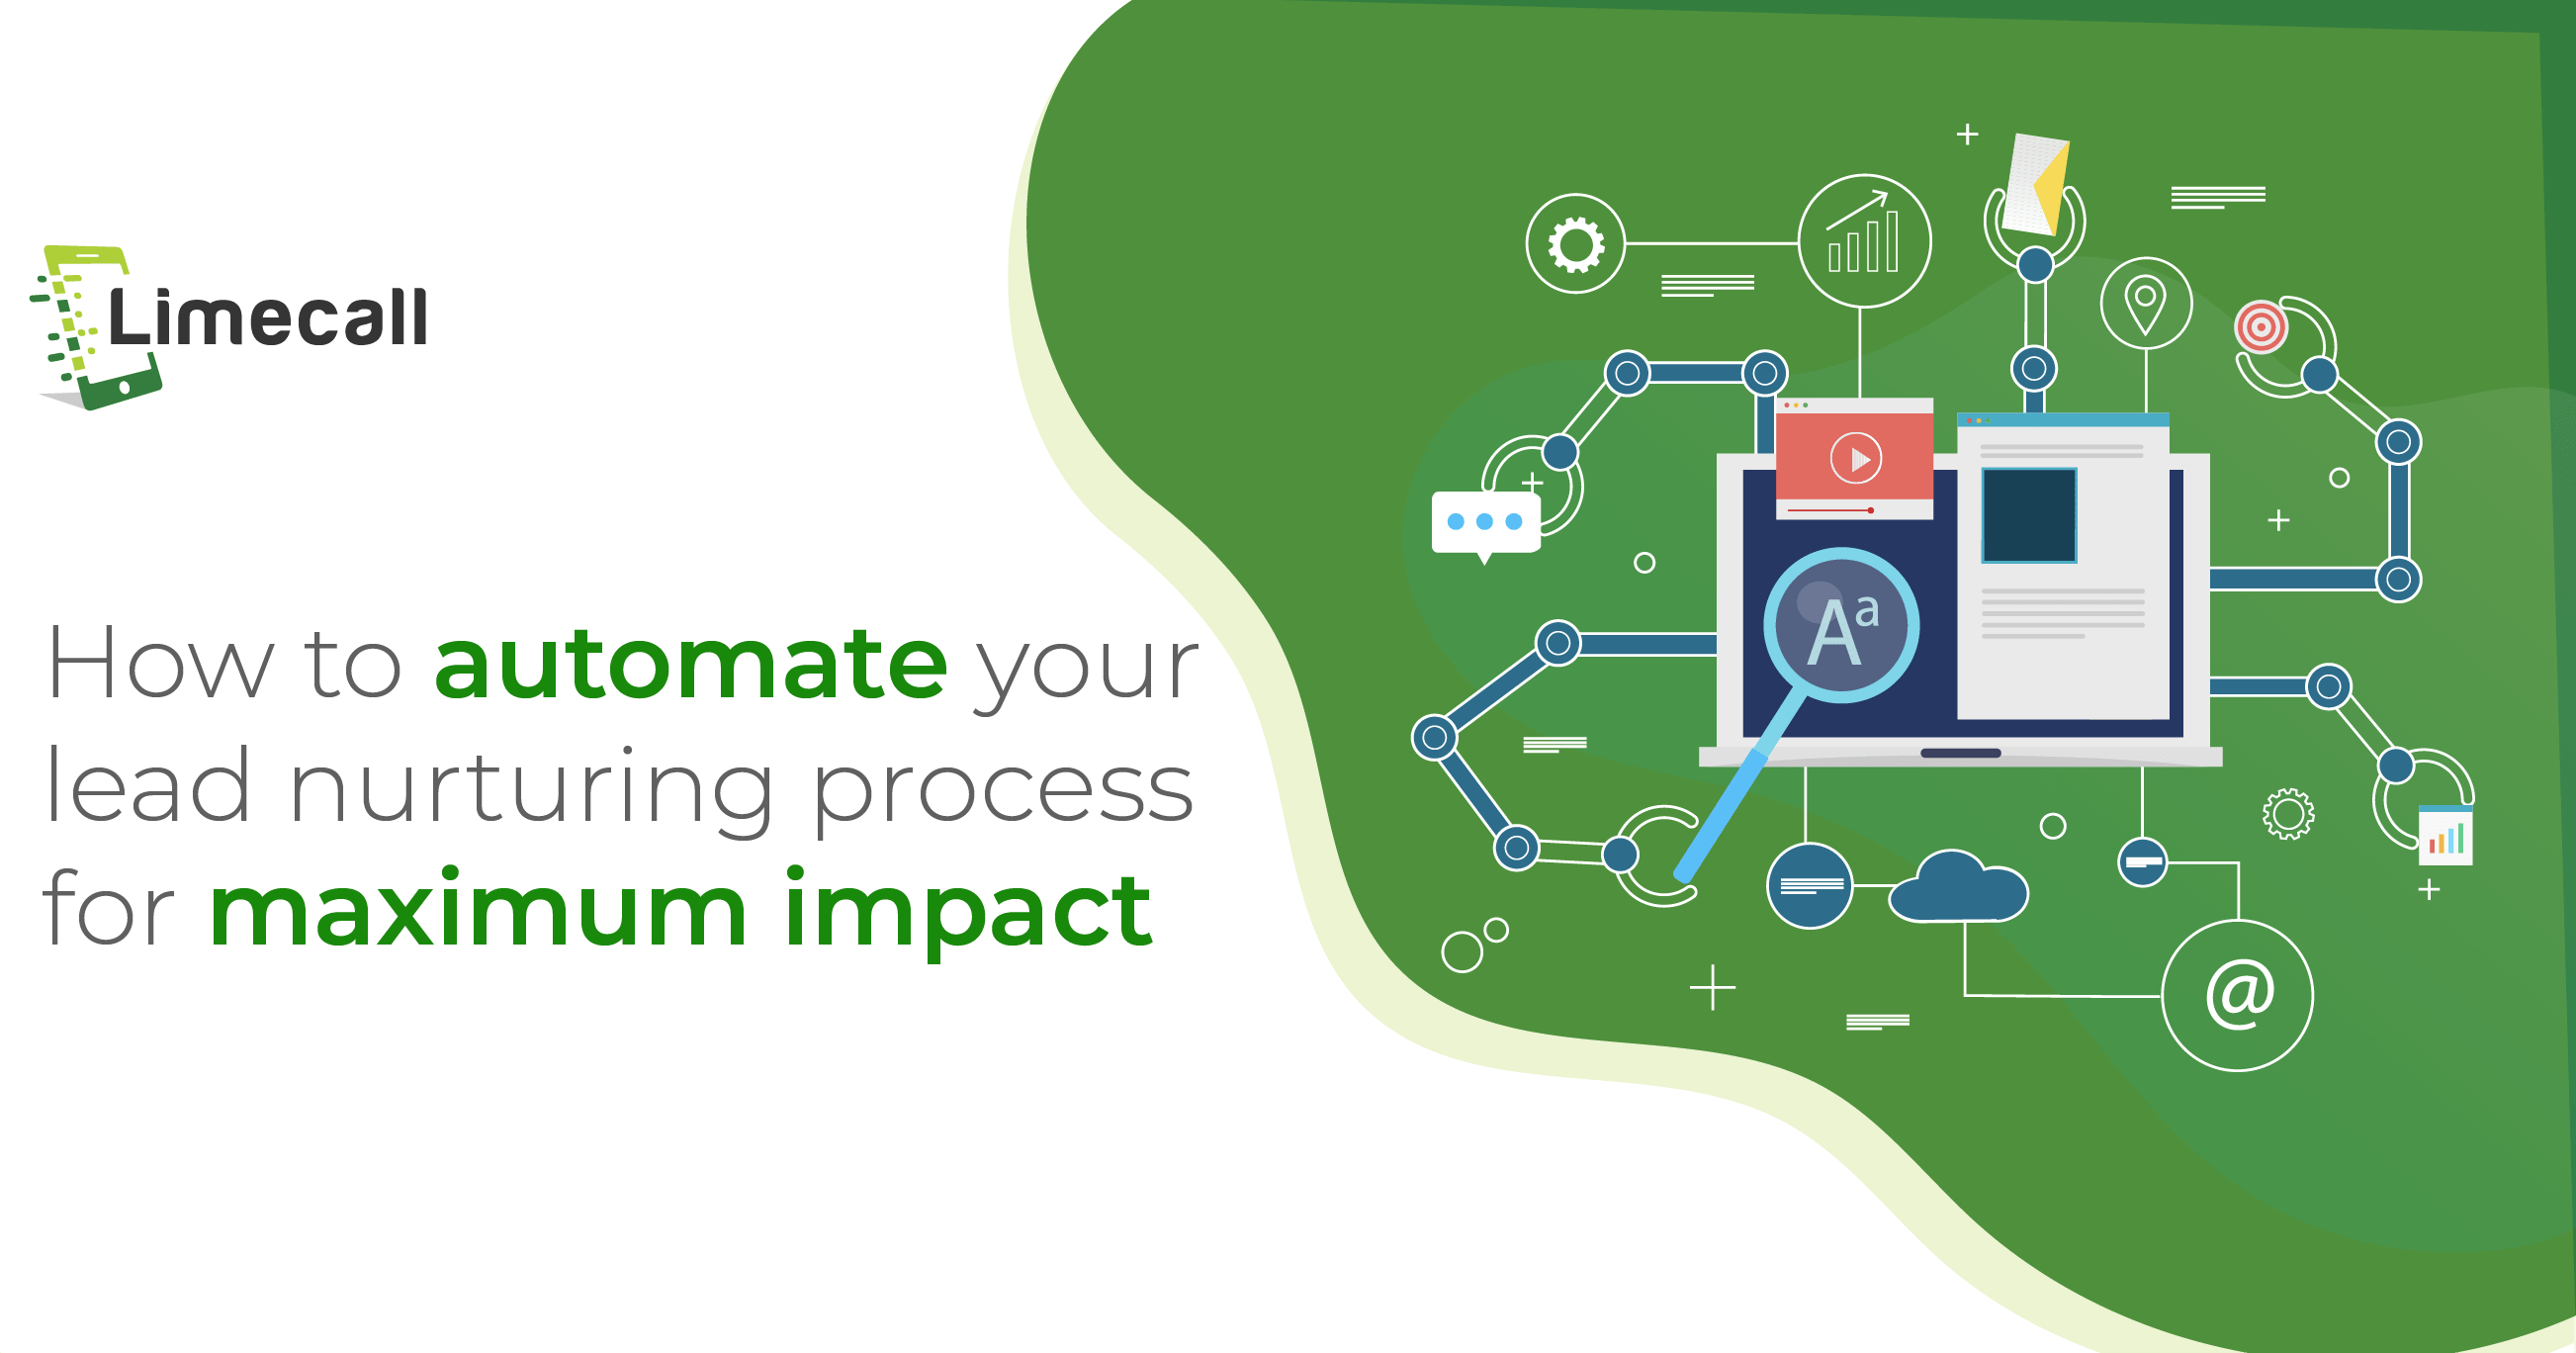 How to automate your lead nurturing process for maximum impact